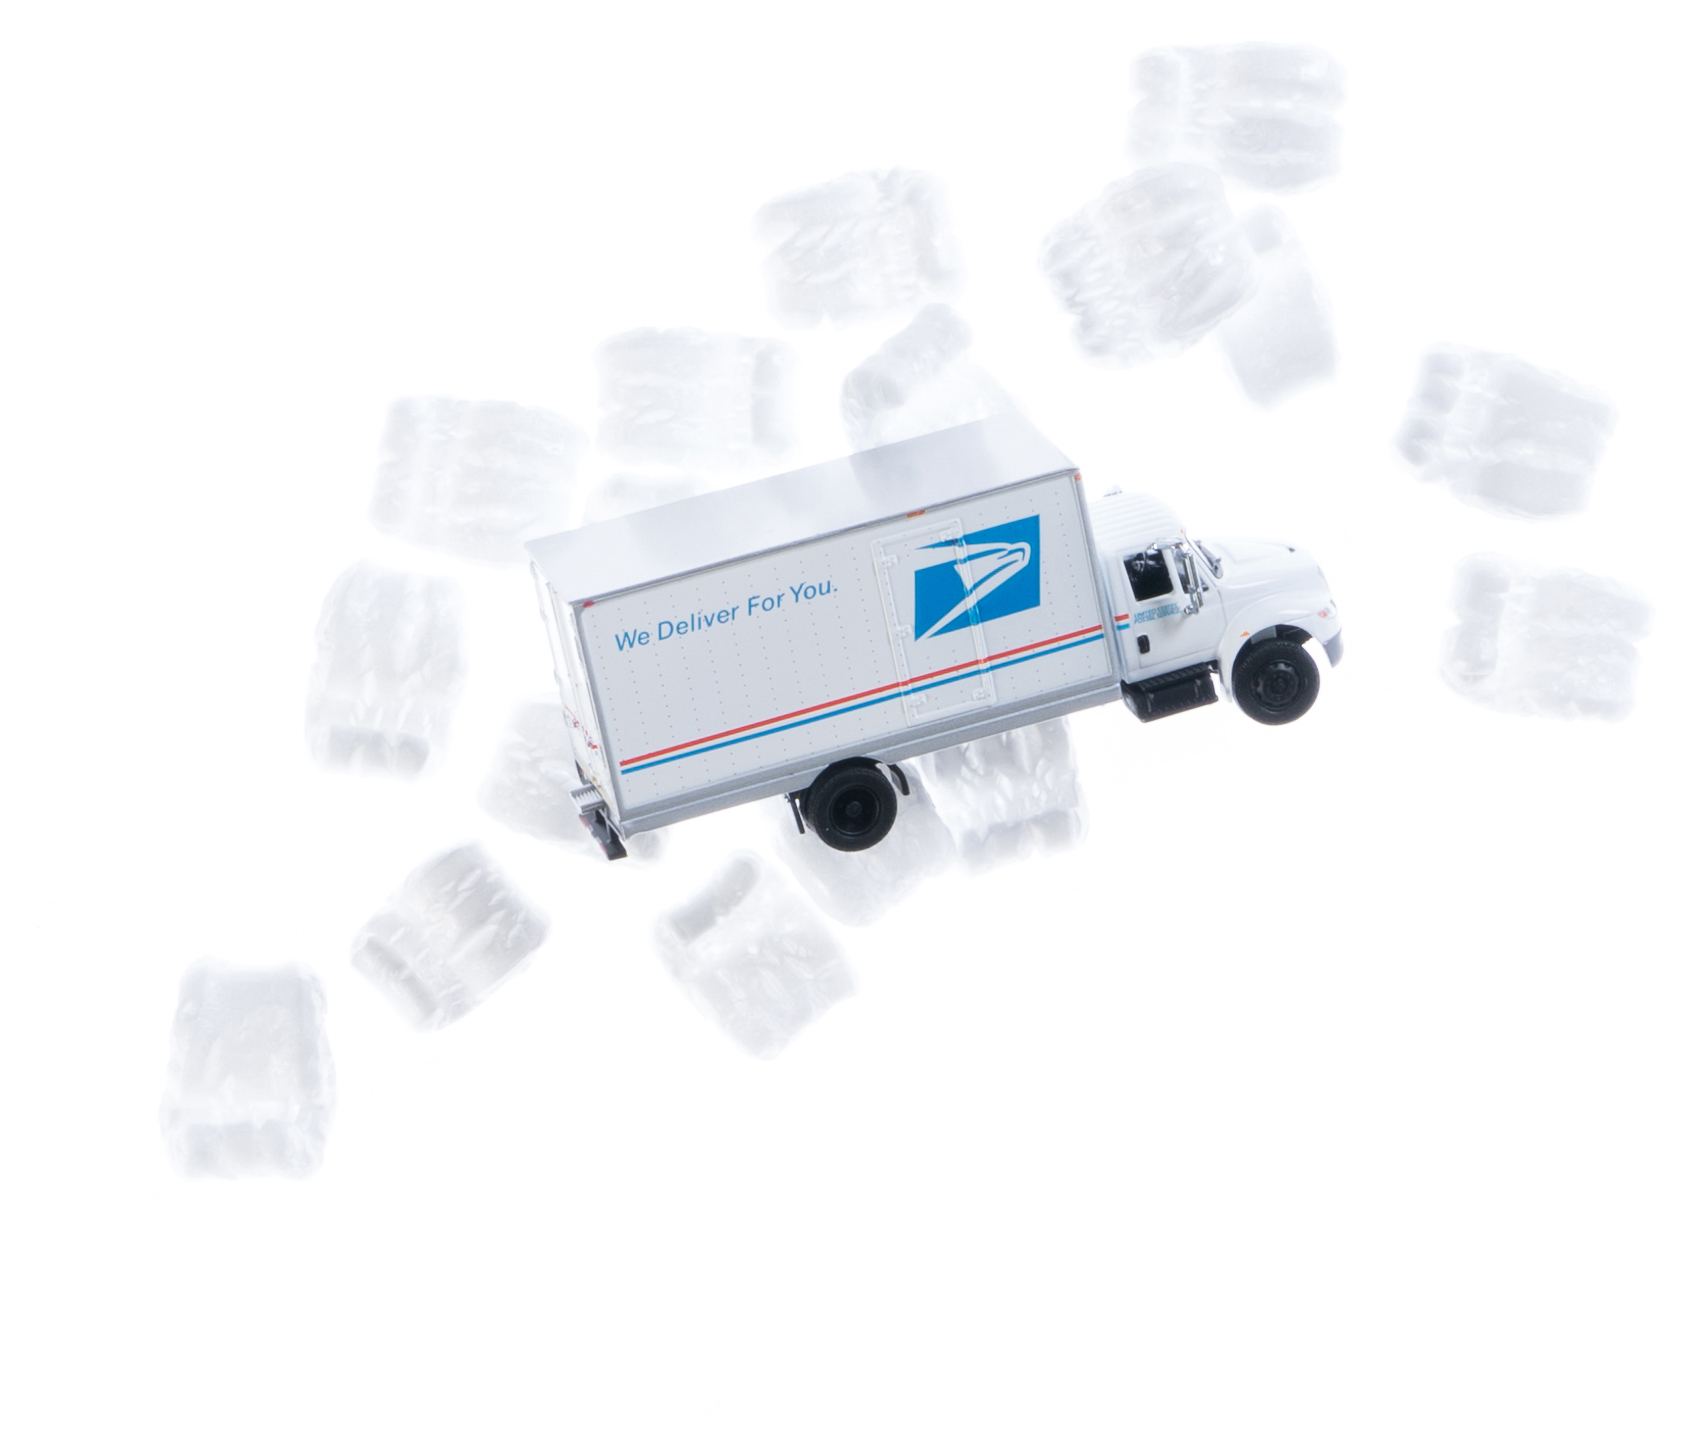 Toy commercial USPS truck plus shipping peanuts